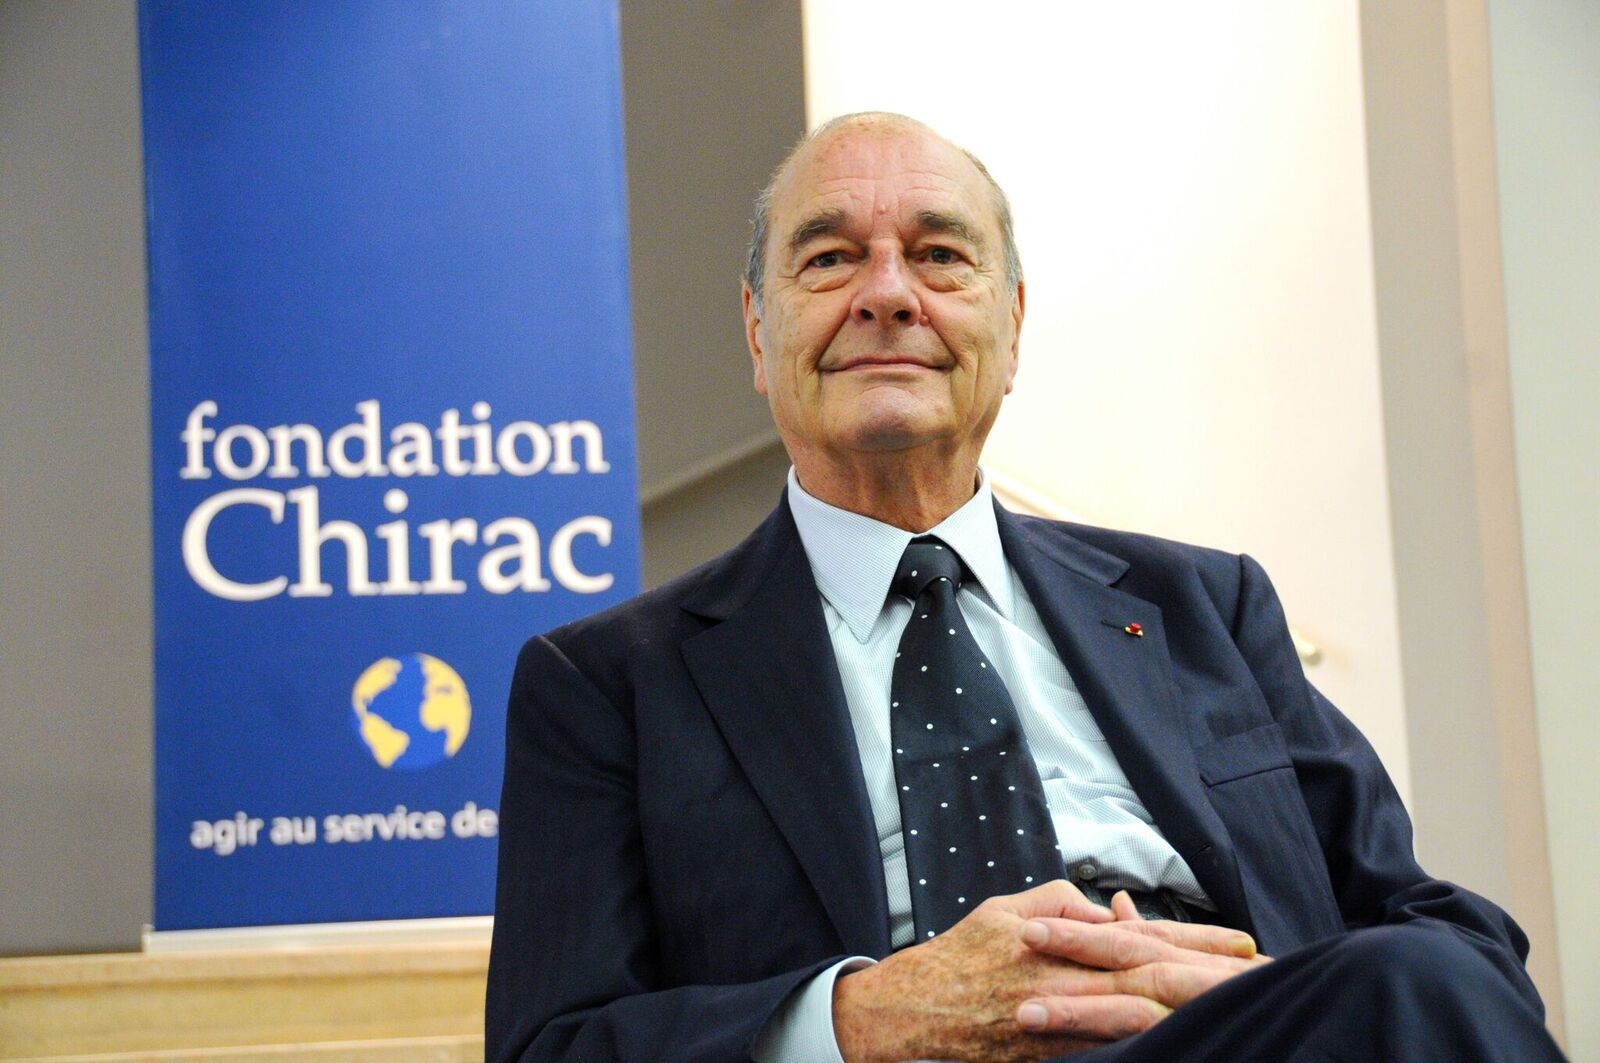 Portrait de Jacques Chirac qui pose devant une affiche de la Fondation Chirac. | Photo : GettyImage